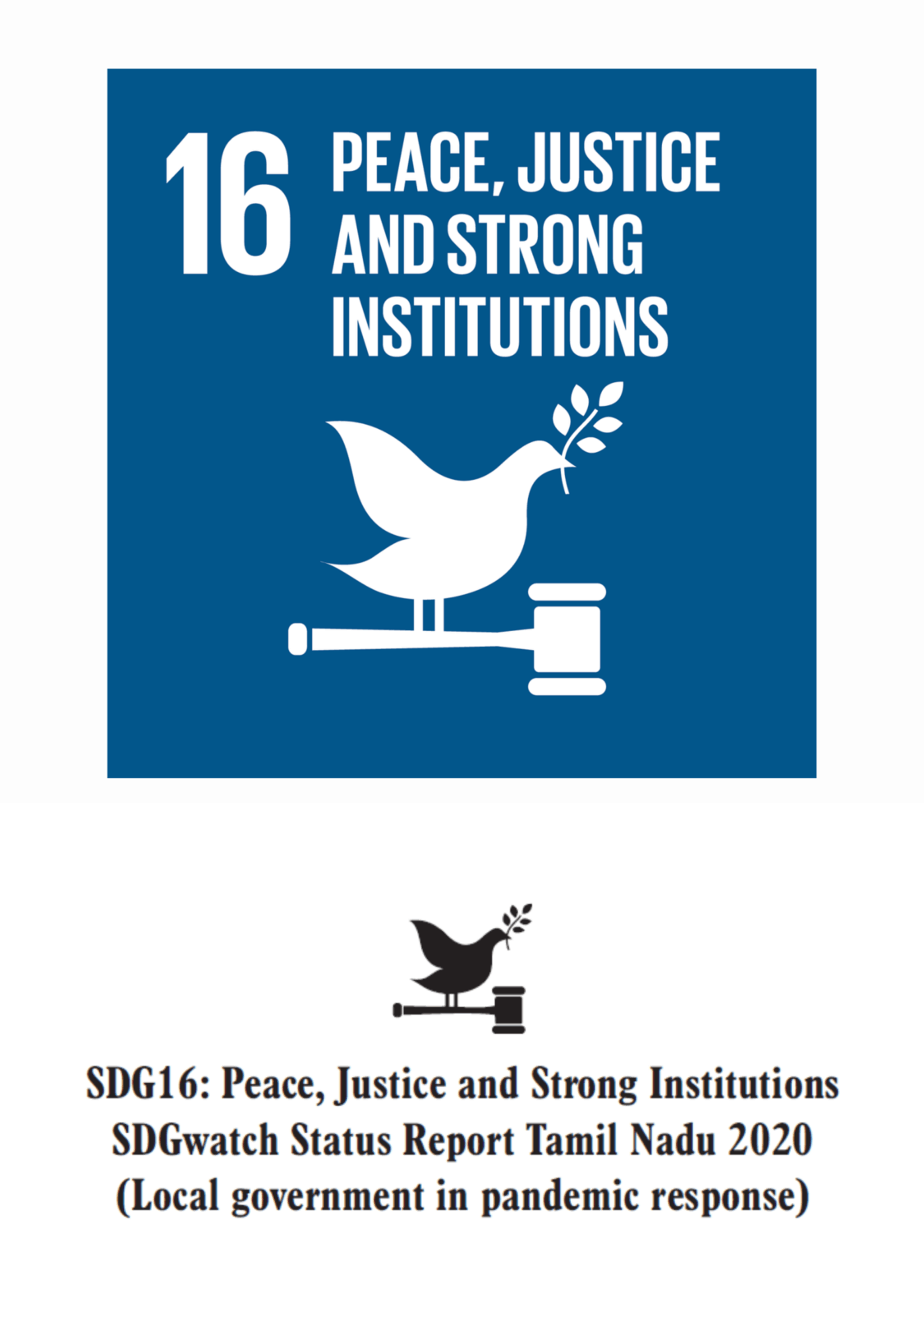 SDG16: Peace, Justice and Strong Institutions (Southern Region)